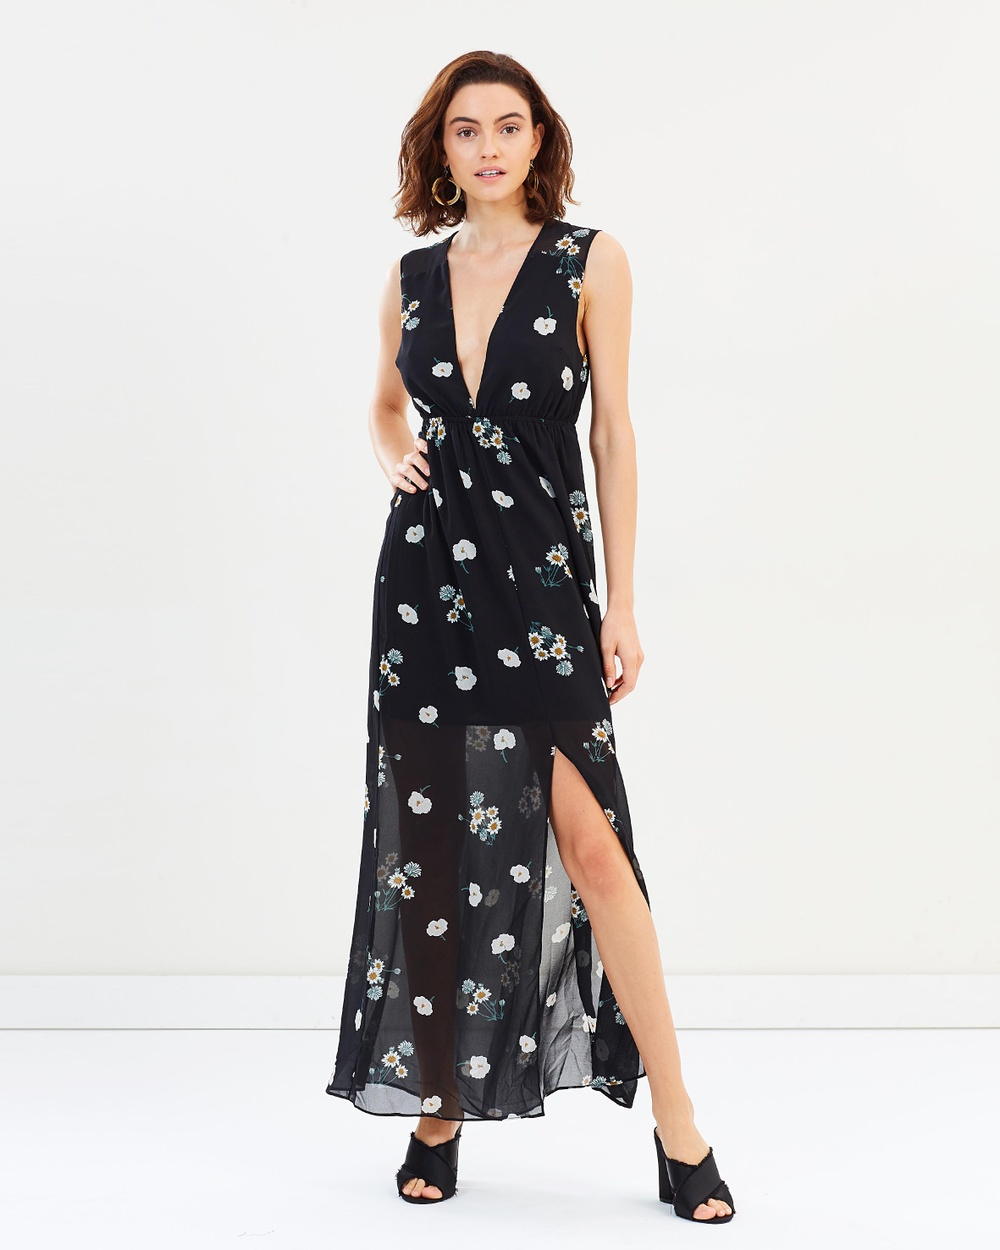 Dazie Wild Flower Days Maxi Dress Printed Dresses Black Base Floral Wild Flower Days Maxi Dress